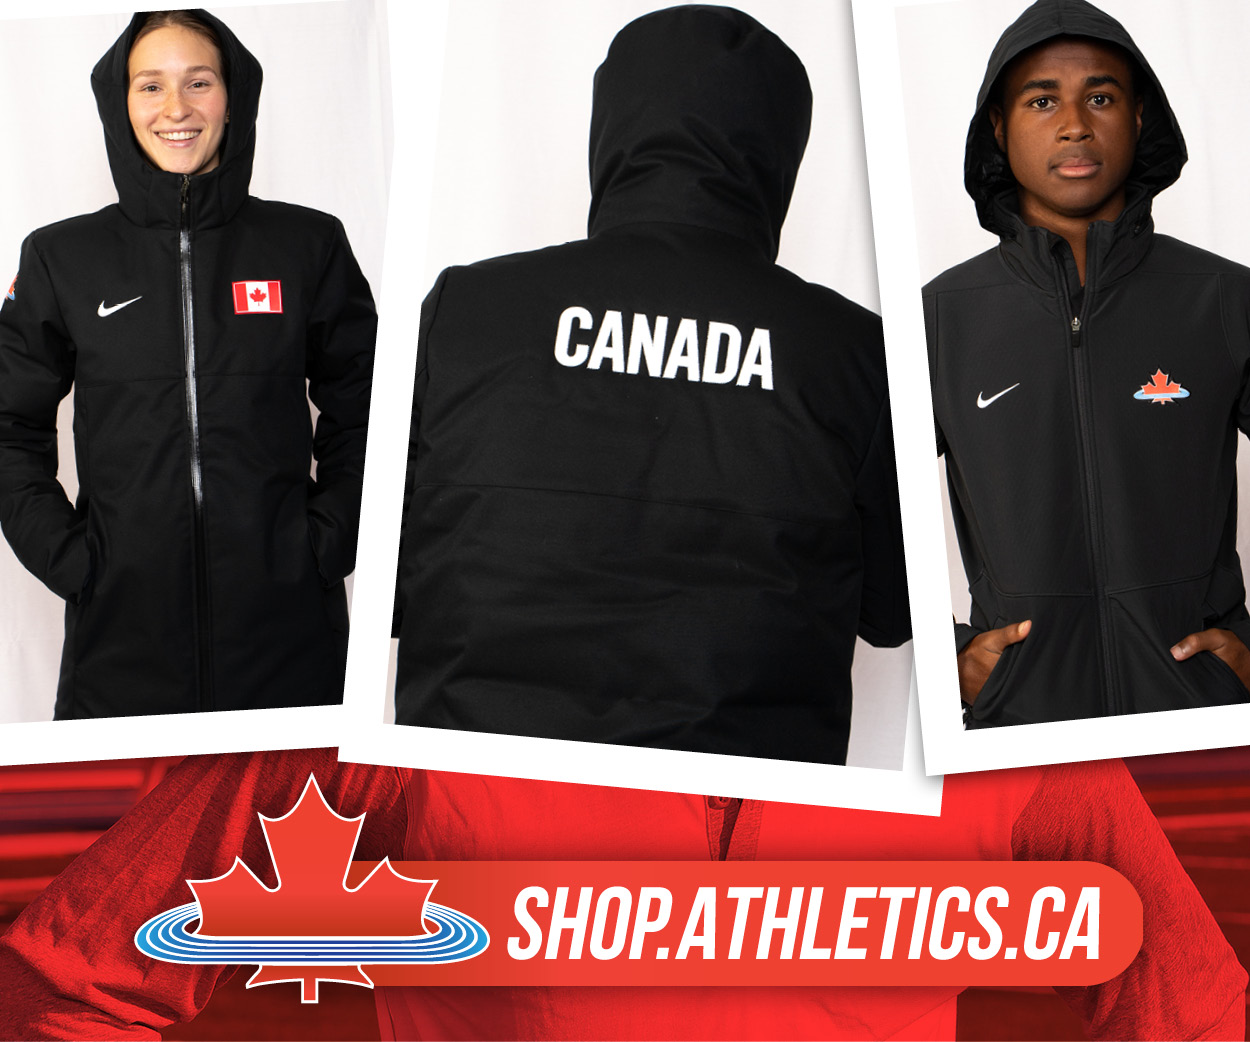 ATHLETICS CANDA SHOP